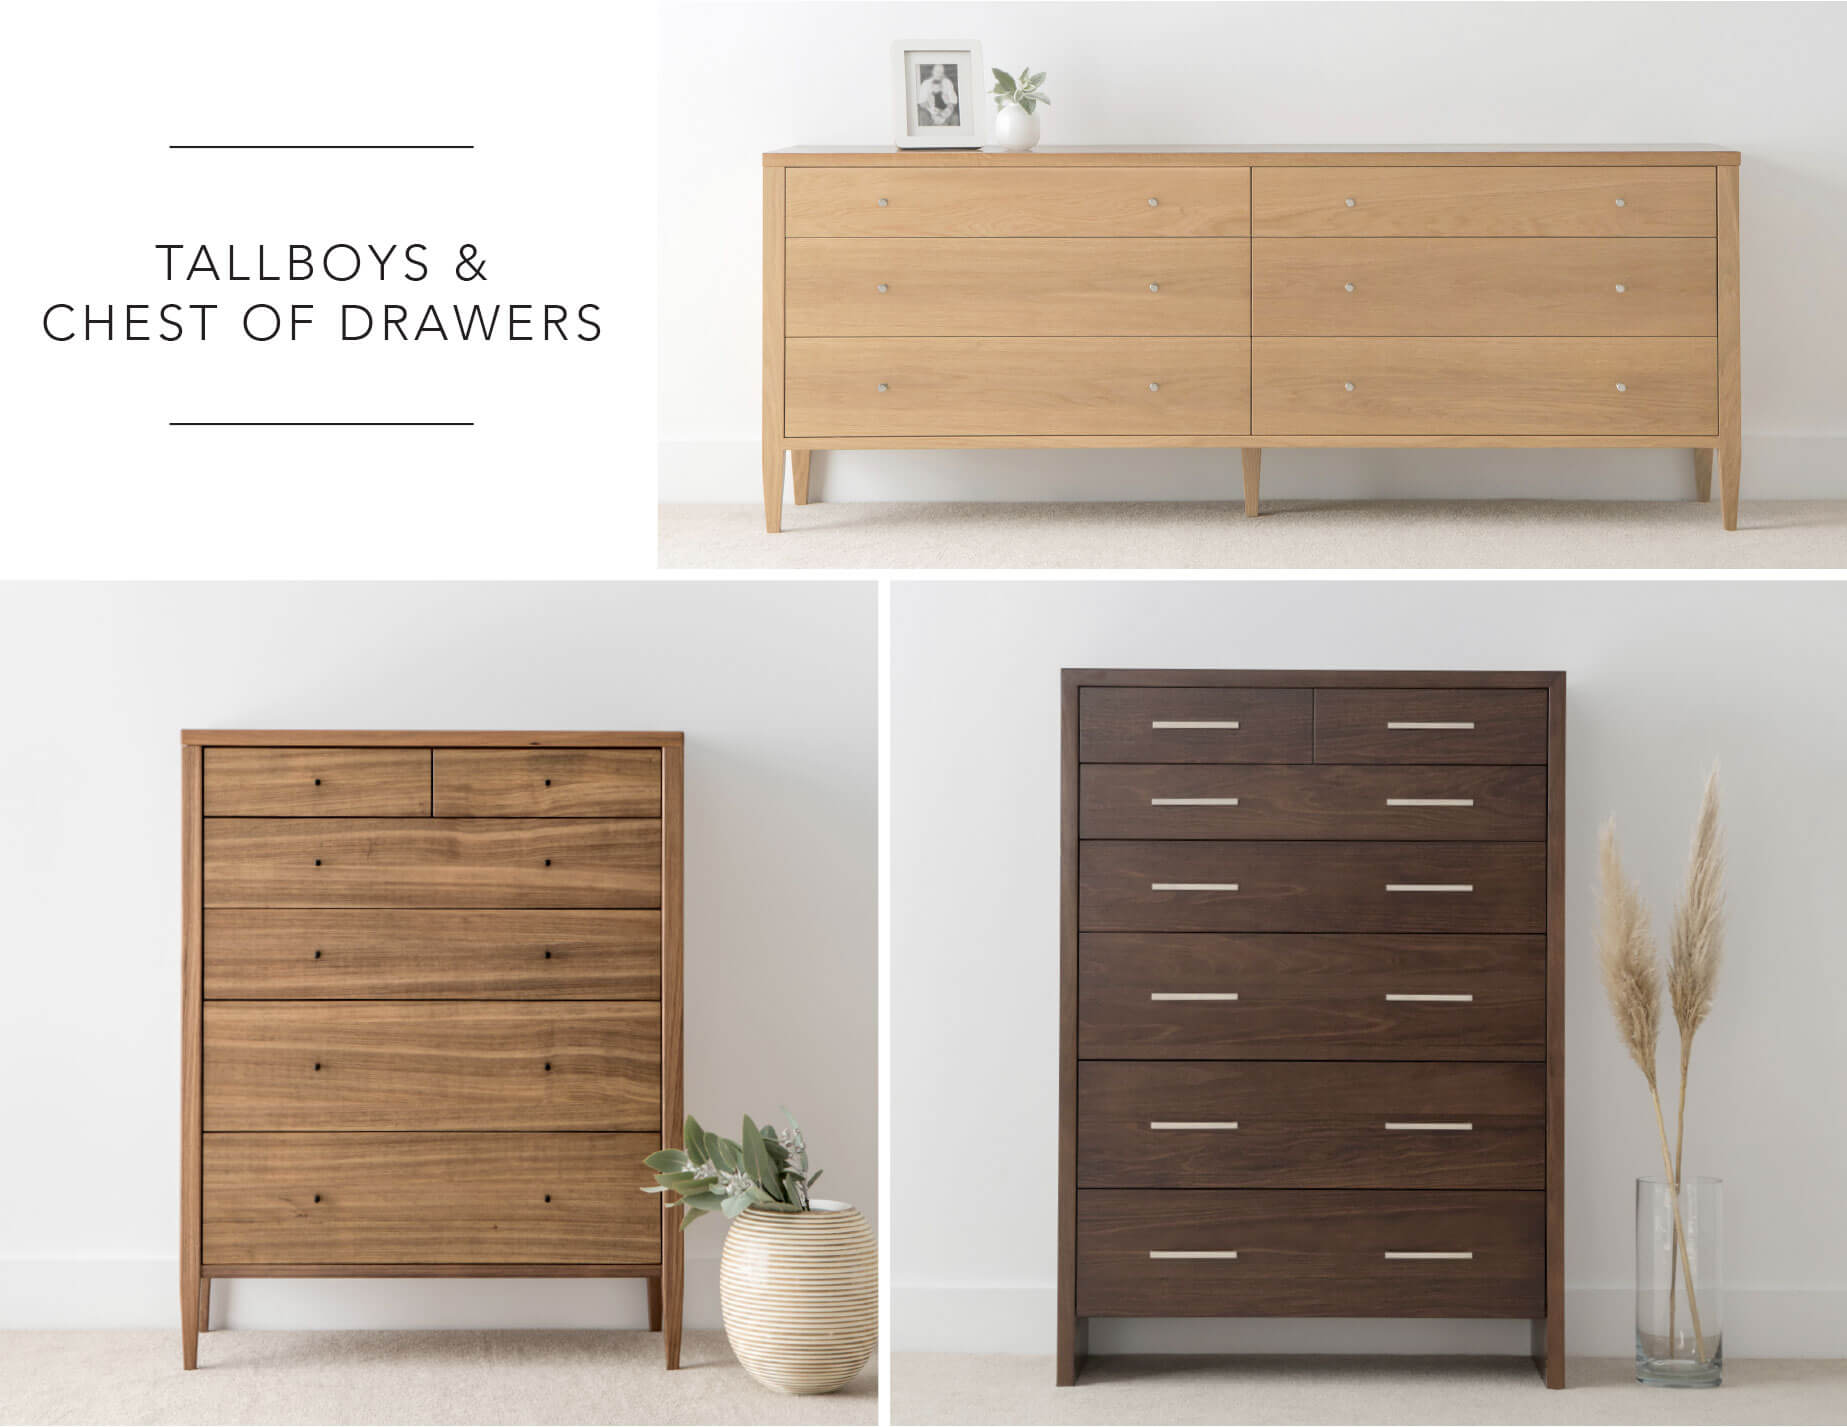 contemporary bedroom storage options in various hardwood timbers